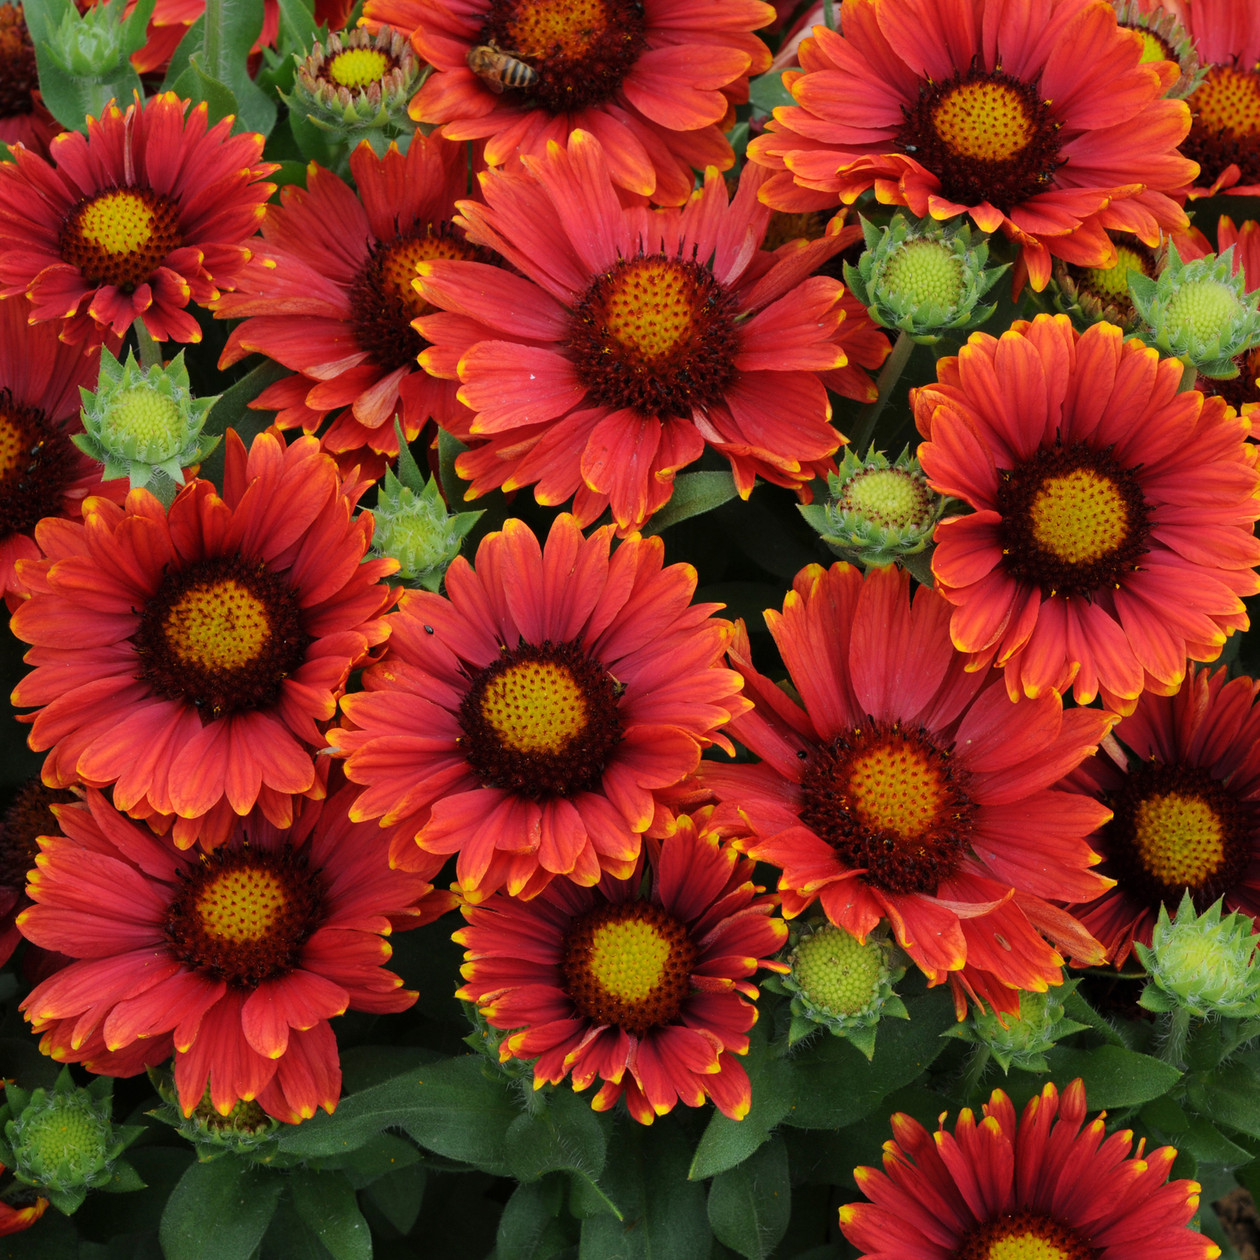 Gaillardia Grandiflora Arizona Red Shades Blanket Flower